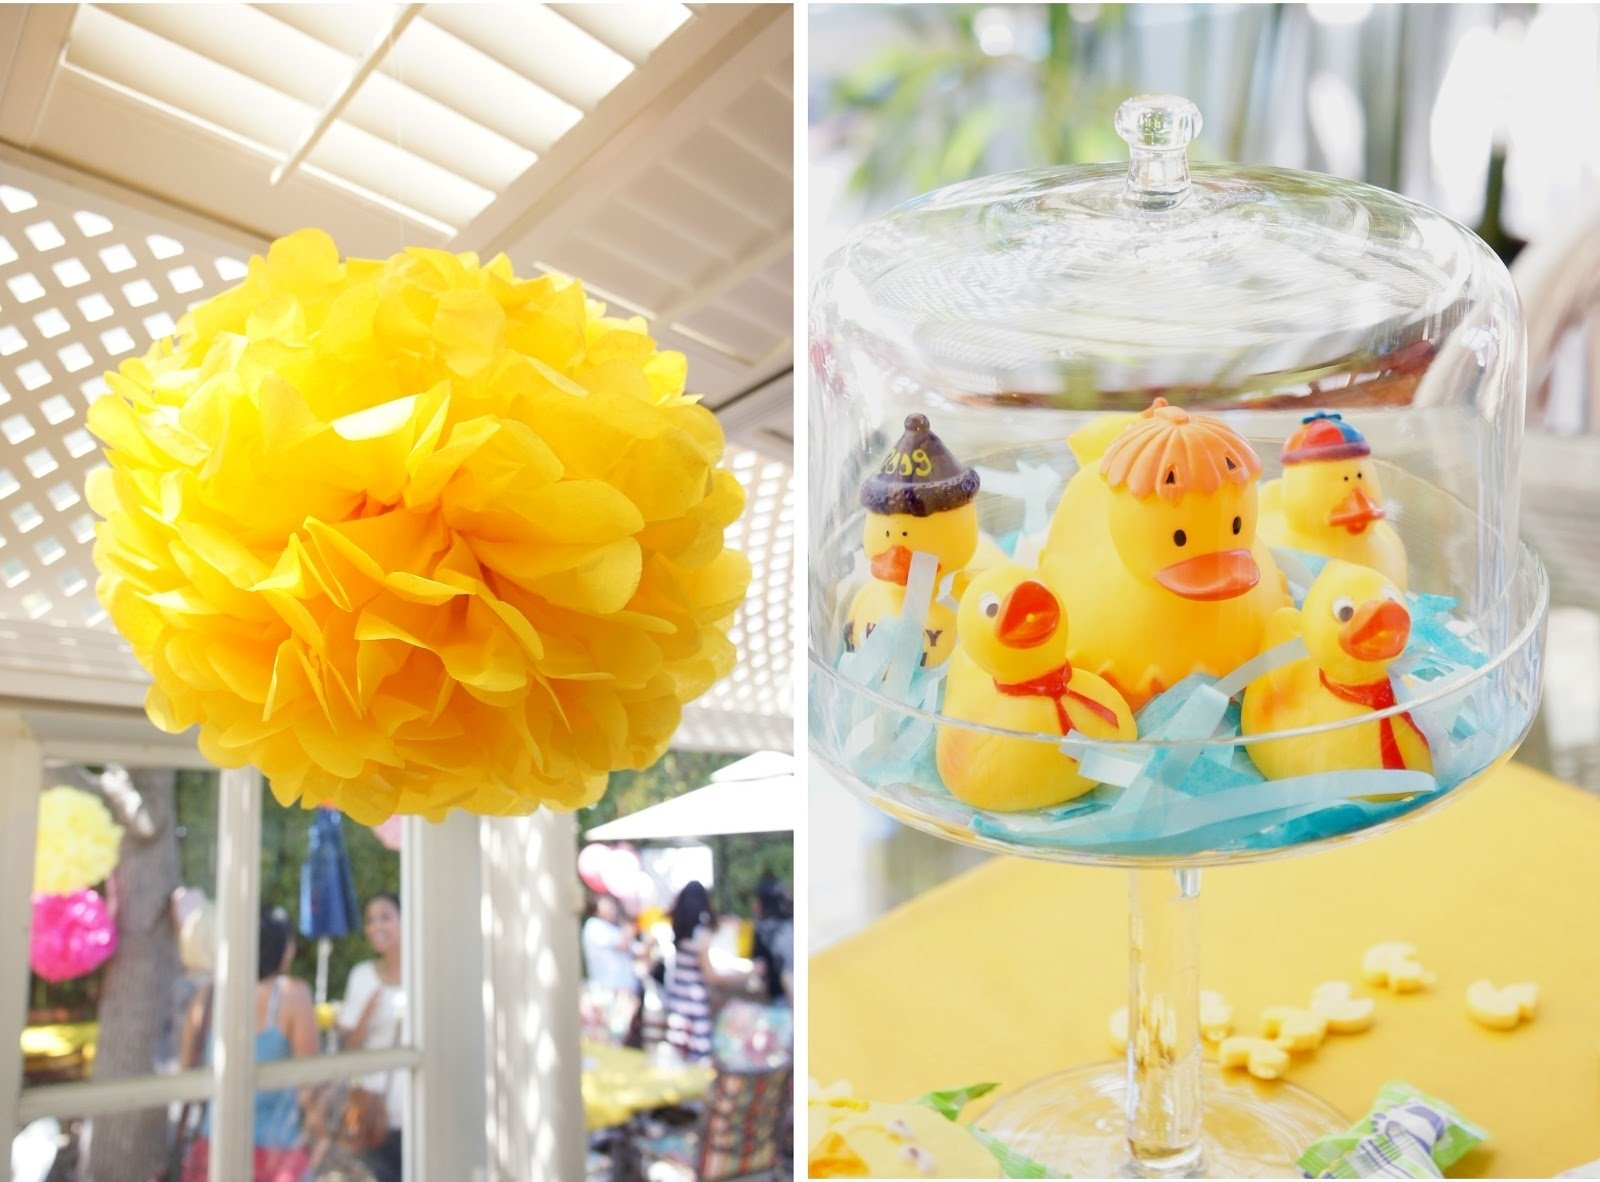 10 Amazing Rubber Duck Baby Shower Ideas dual baby shower ideas rubber ducky baby shower stuff to buy 2021